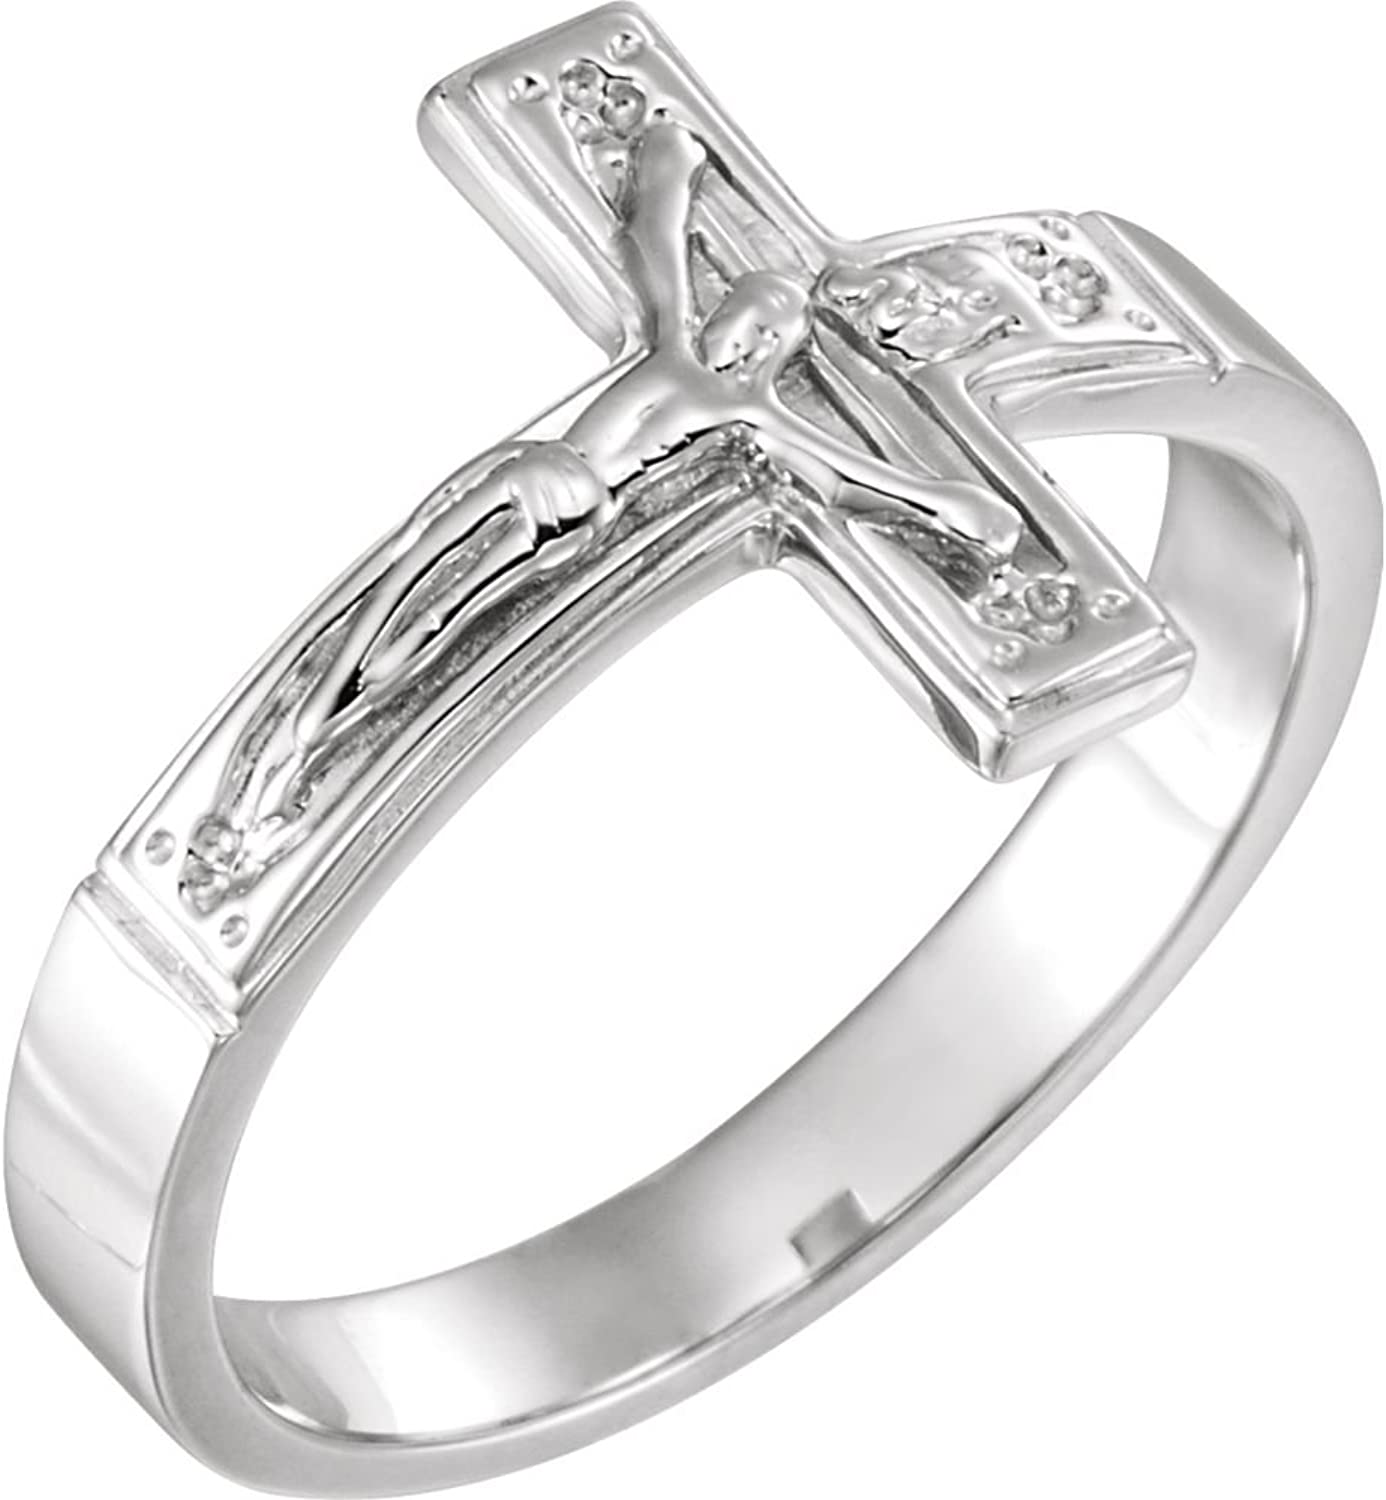 Beautiful Sterling silver 925 sterling Sterlingsilver Crucifix Chastity Ring W Box